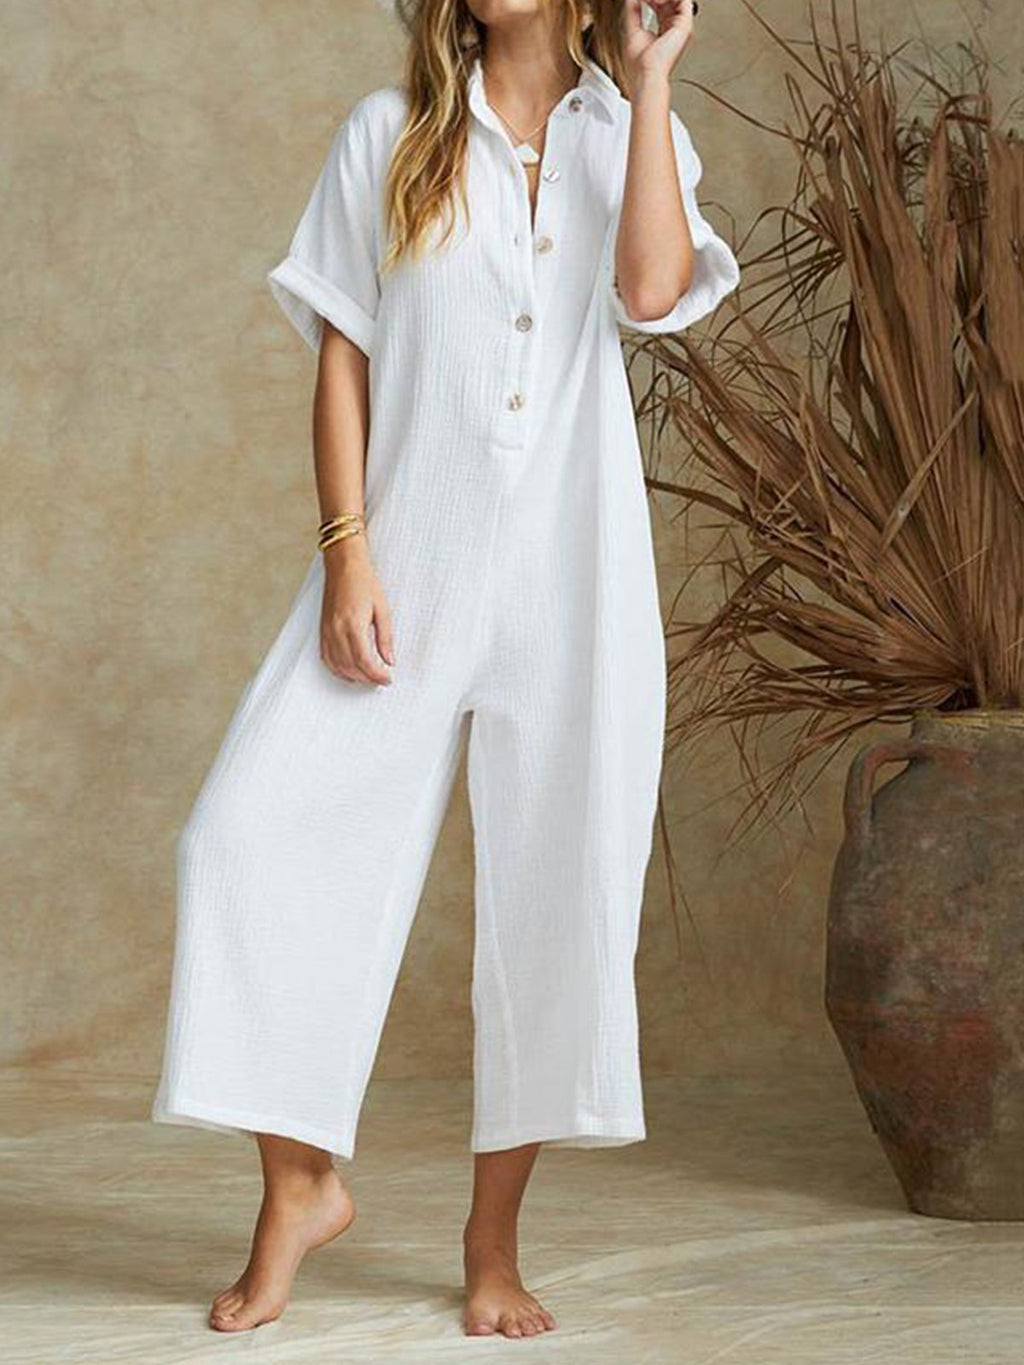 Solid Linen/Cotton Casual High Rise Crop Length Jumpsuits